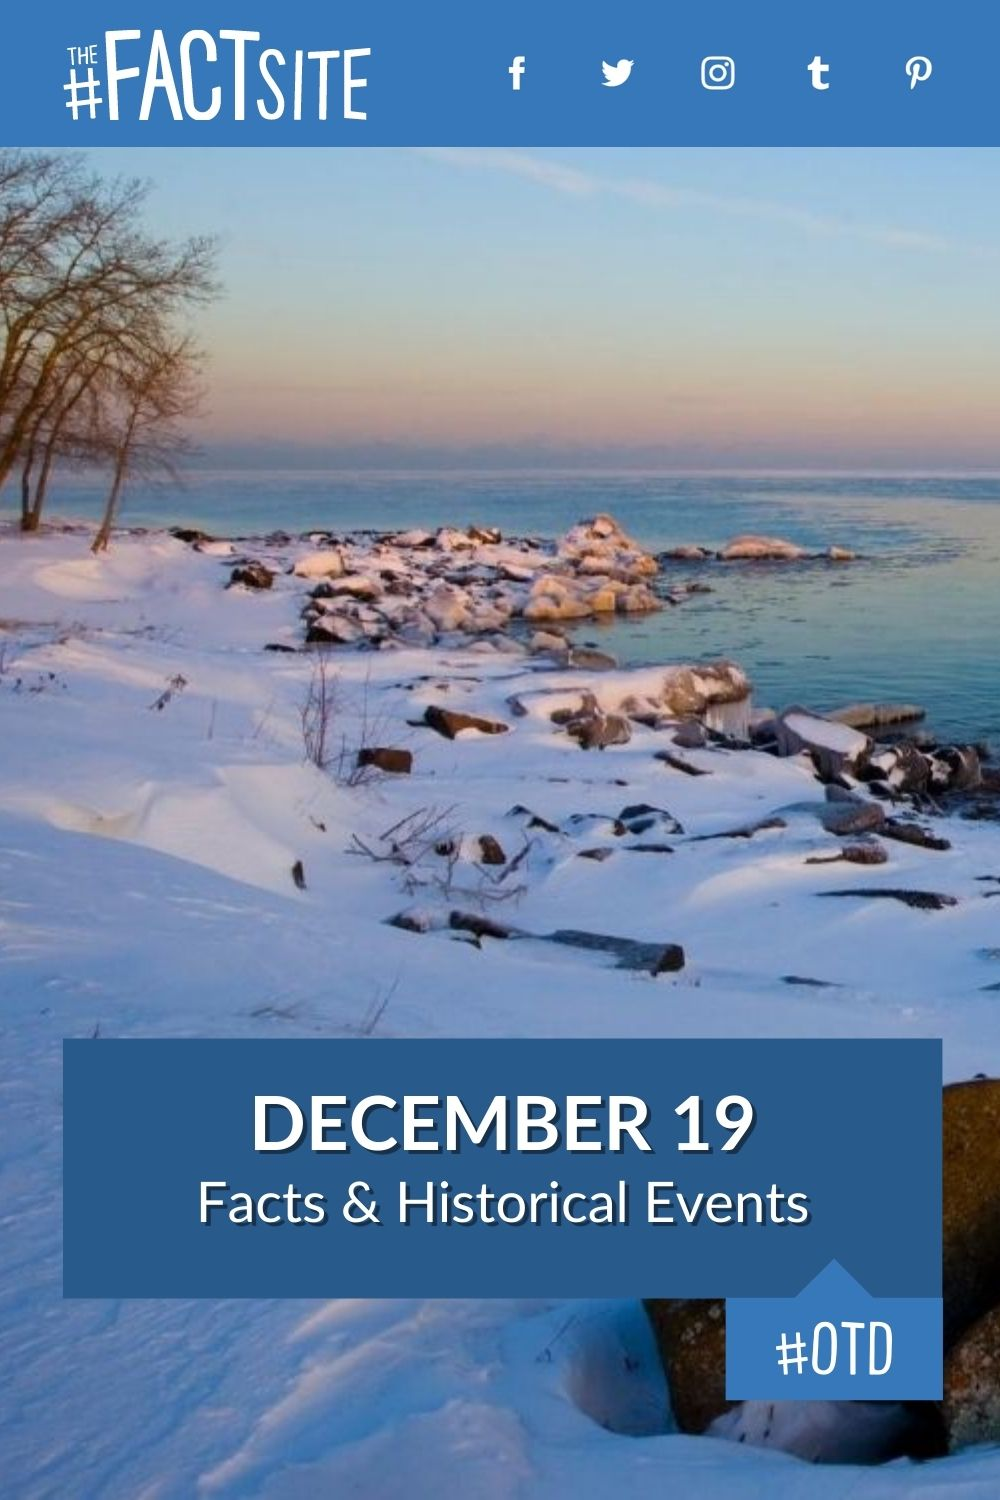 Facts & Historic Events That Happened on December 19